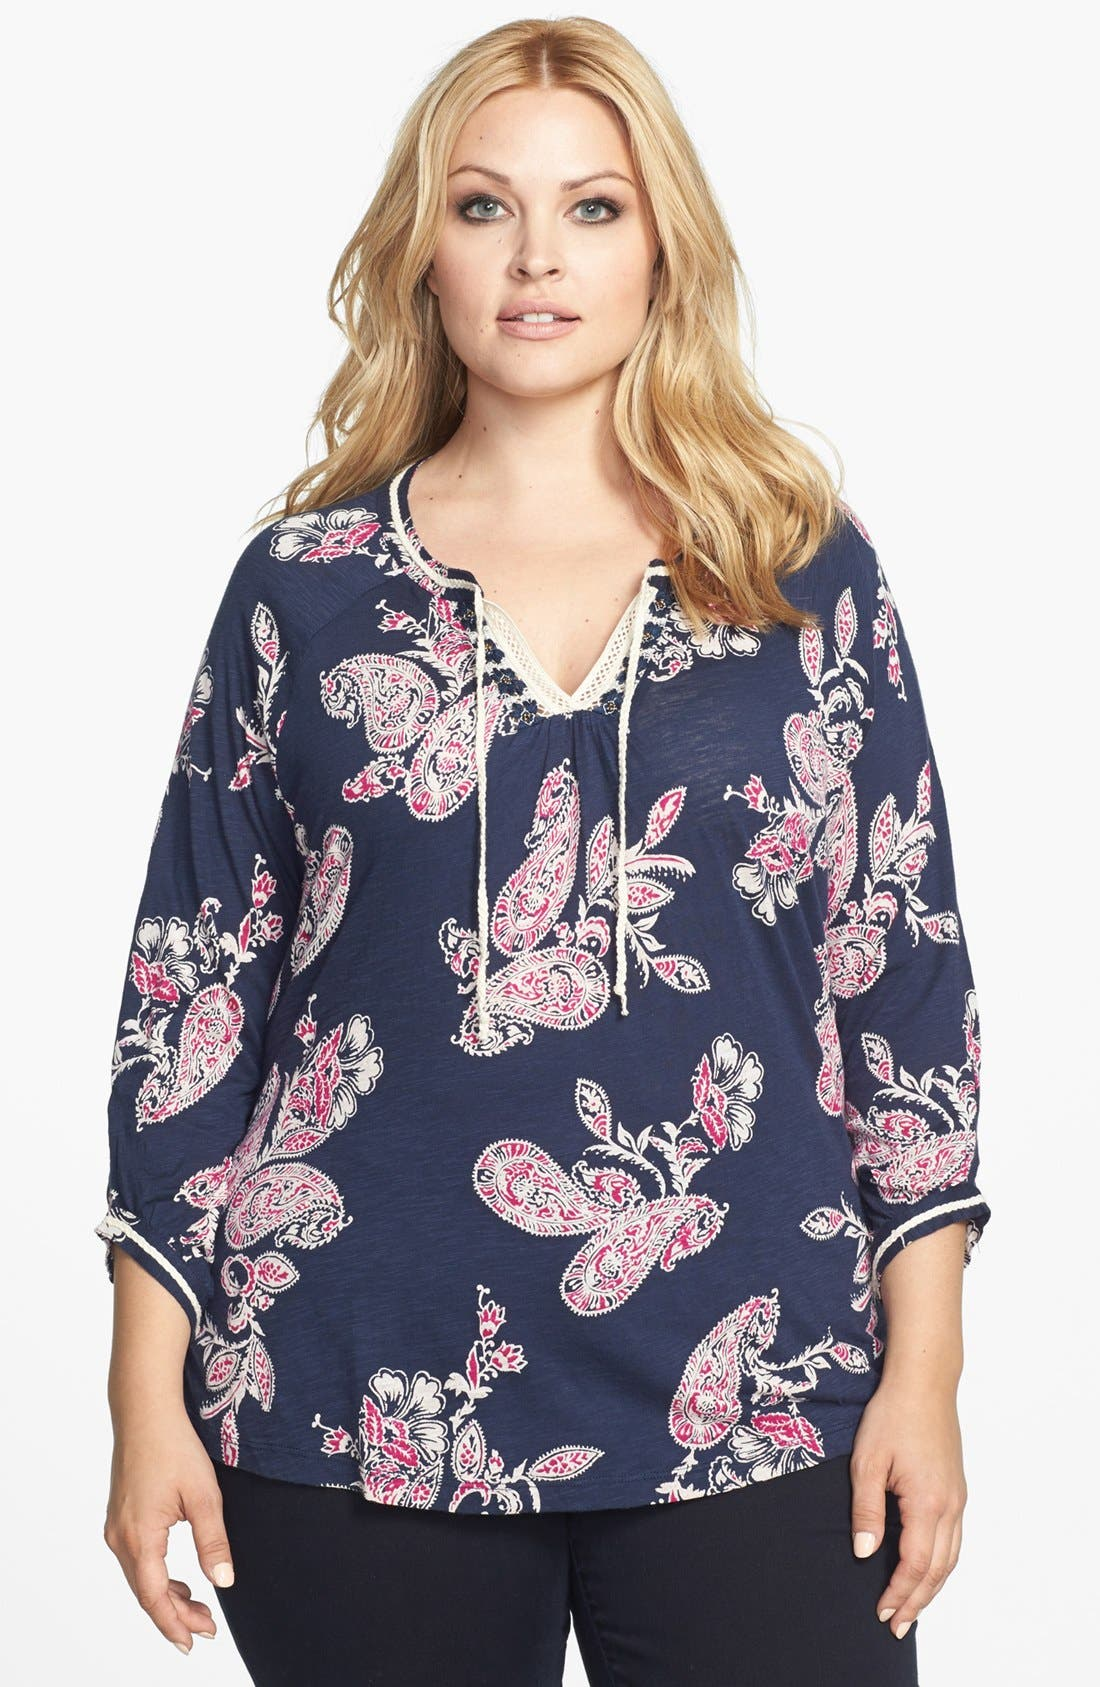 Alternate Image 1 Selected - Lucky Brand 'Taryn' Paisley Print Top (Plus Size)